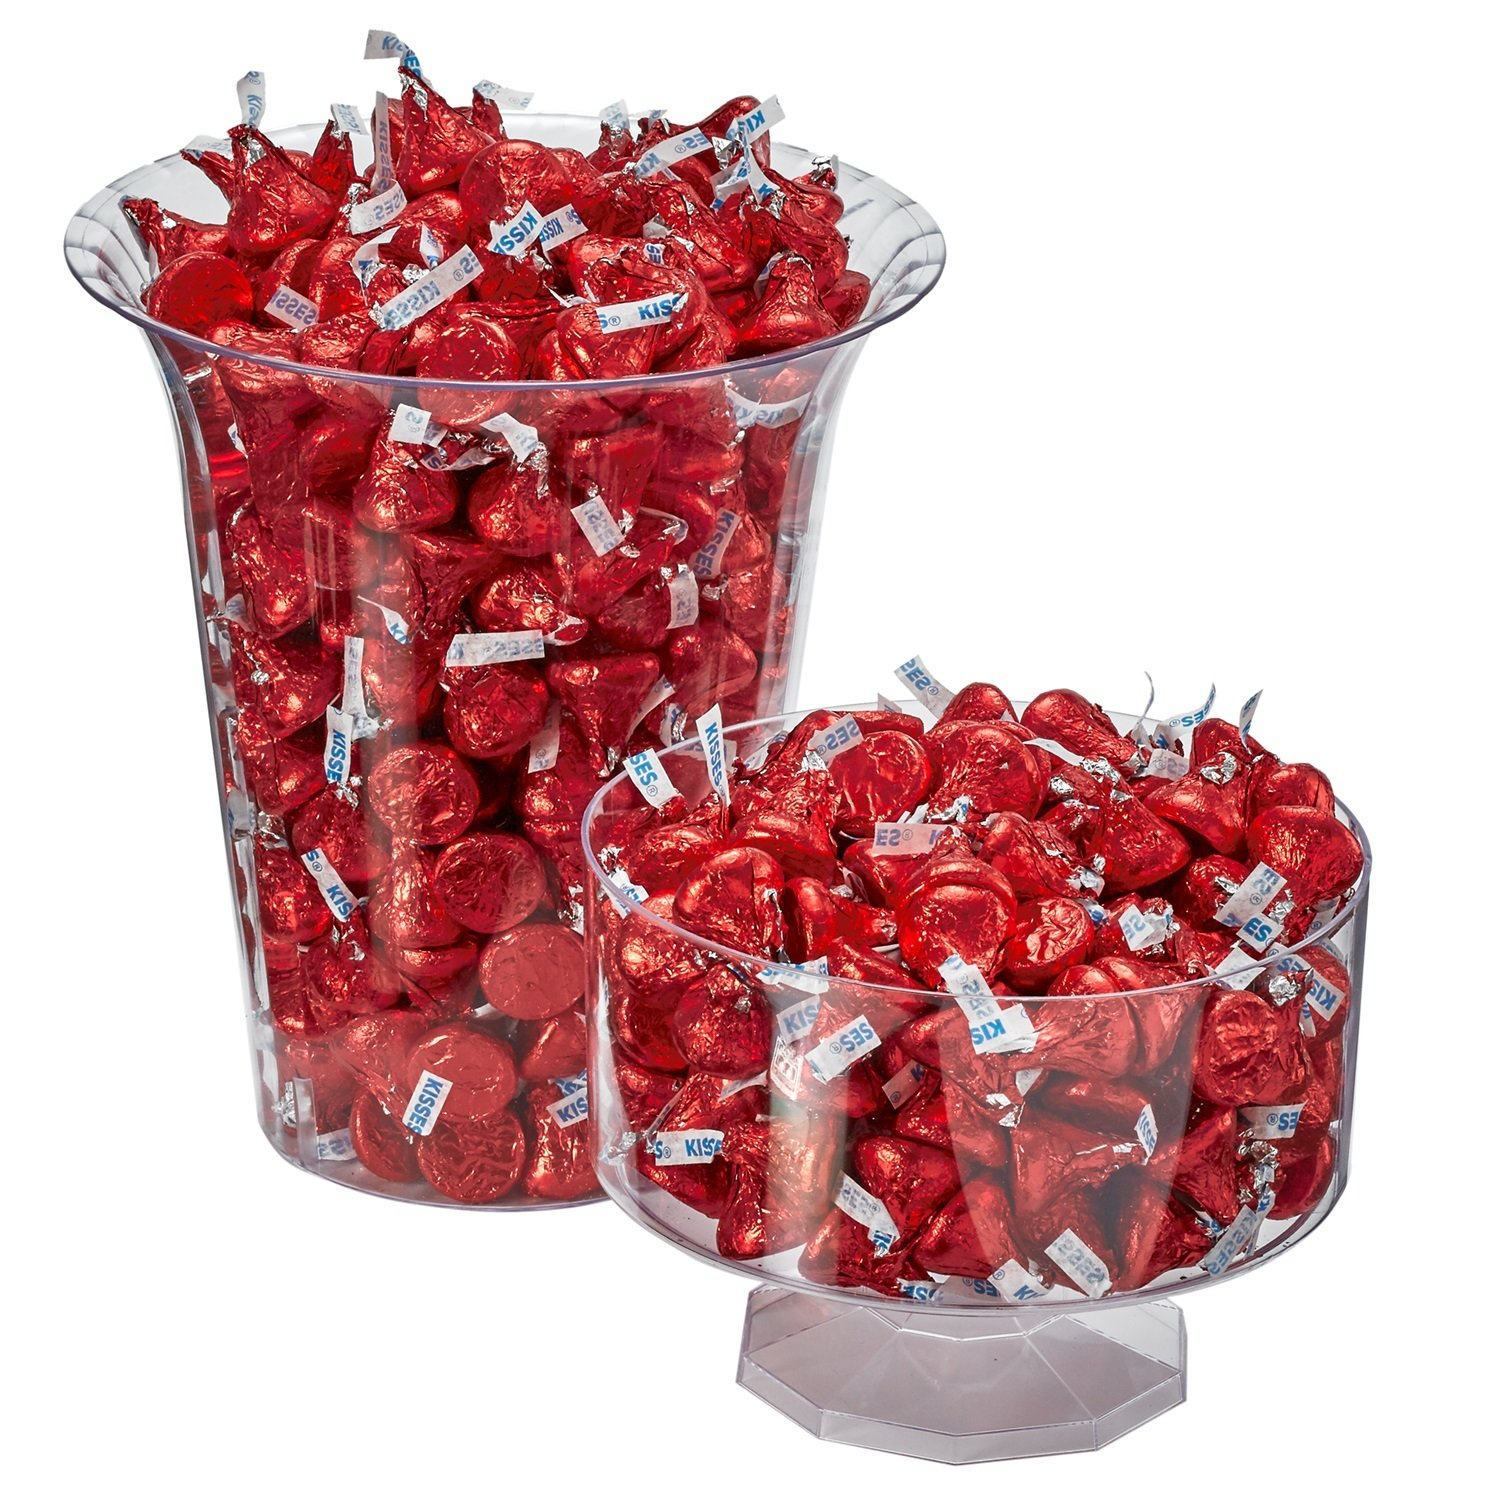 HERSHEY'S KISSES Chocolate Candy, Red Foils, 4.1lb Bulk Candy, approx. 400 Pieces. Perfect for Graduation and 4th of July Decorations by Kisses (Image #5)